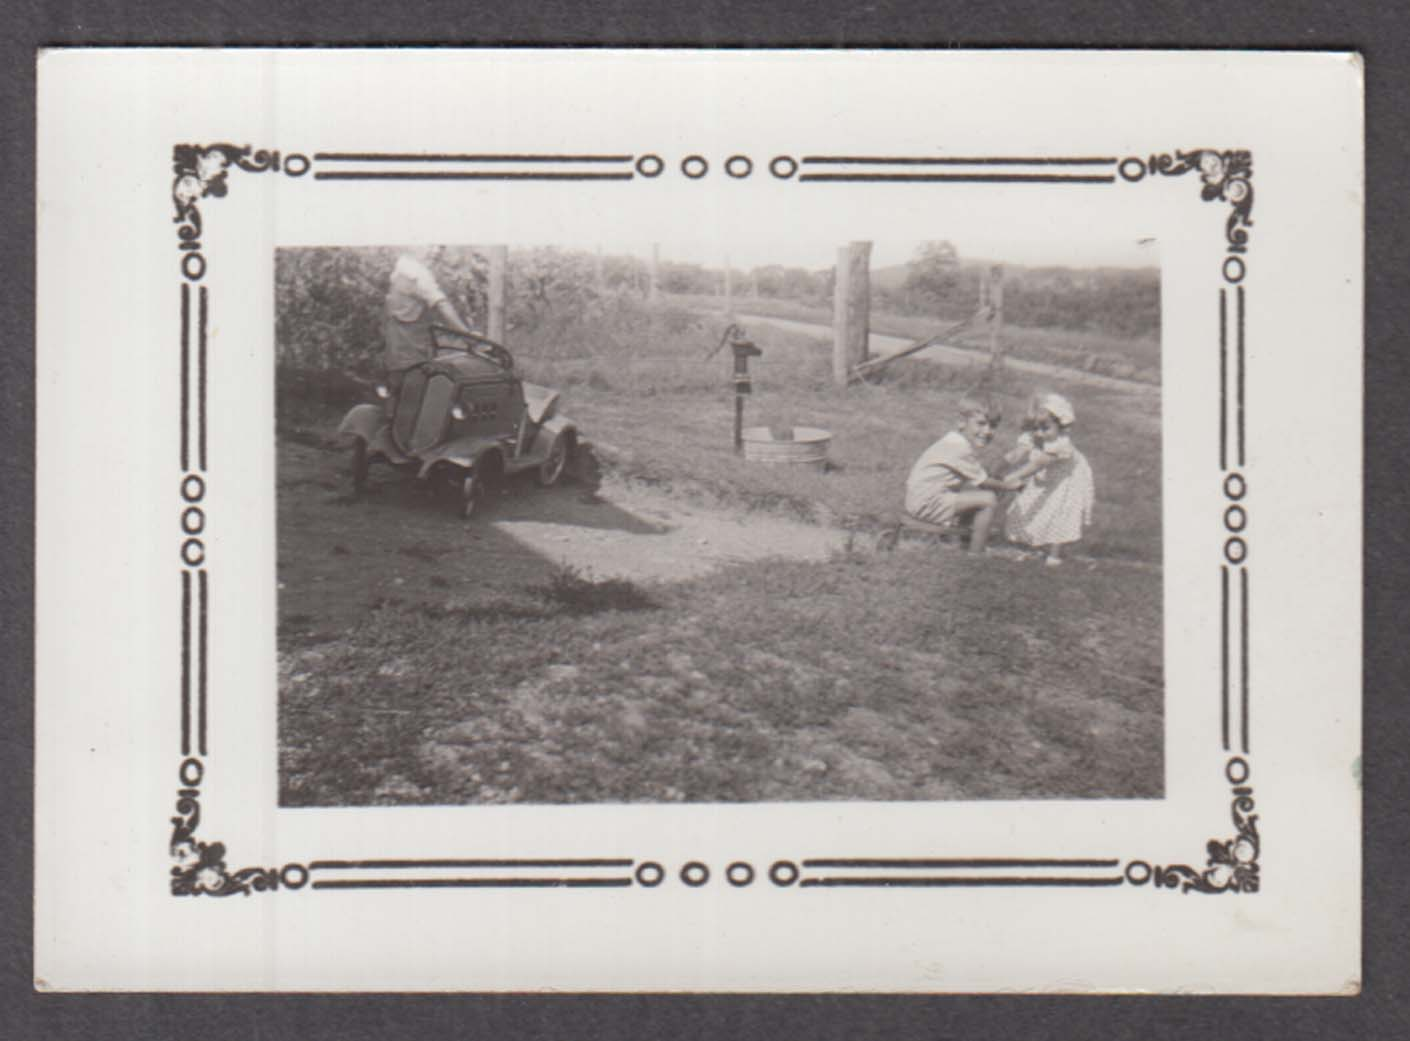 1930s Buick pedal car with Joan & Johnnie Jr playing photo 1935